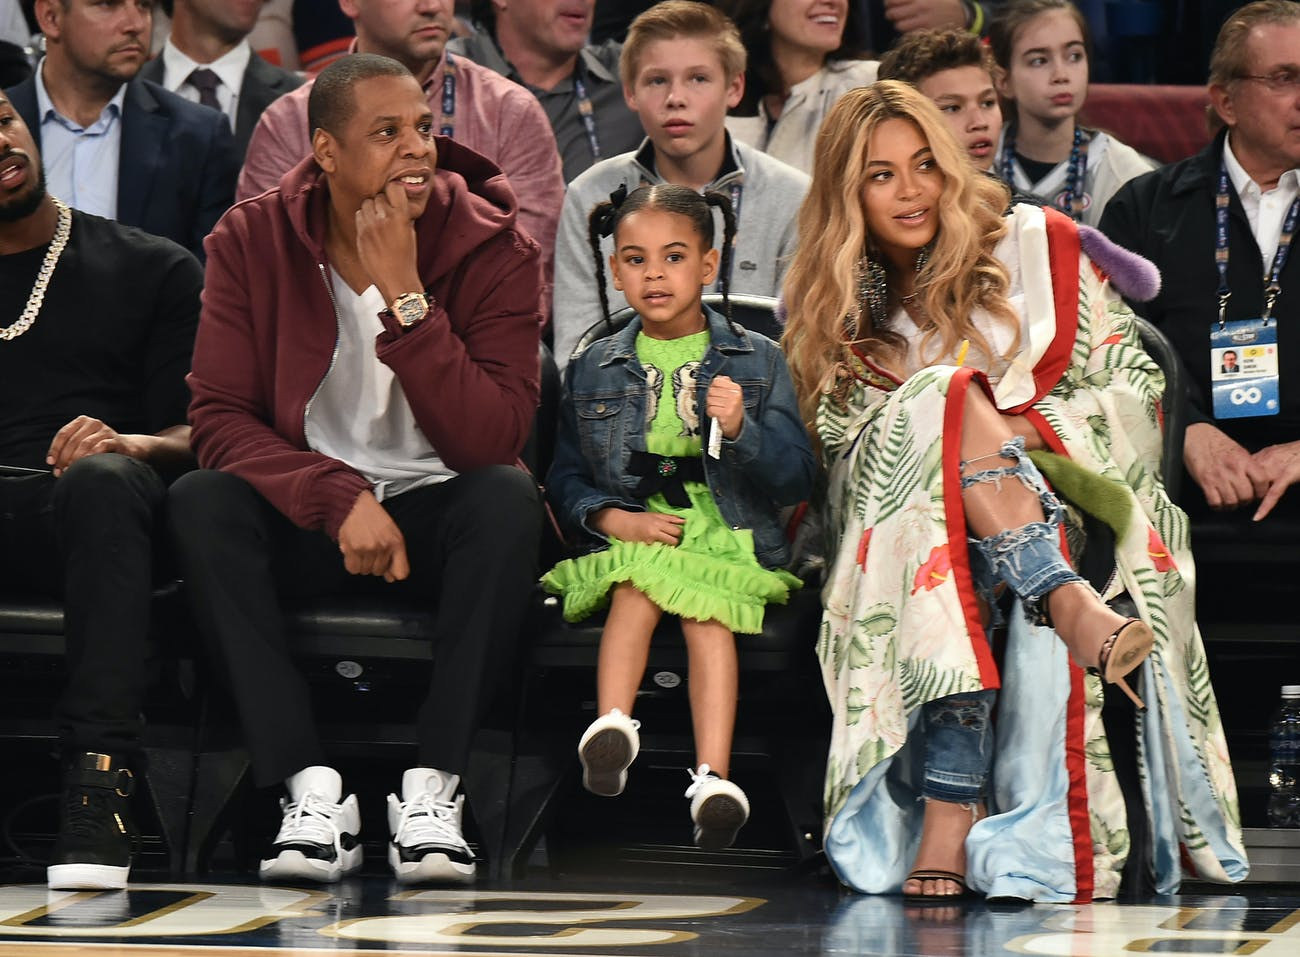 NEW ORLEANS, LA - FEBRUARY 19: Jay Z, Blue Ivy Carter and Beyonce Knowles attend the 66th NBA All-Star Game at Smoothie King Center on February 19, 2017 in New Orleans, Louisiana. (Photo by Theo Wargo/Getty Images)